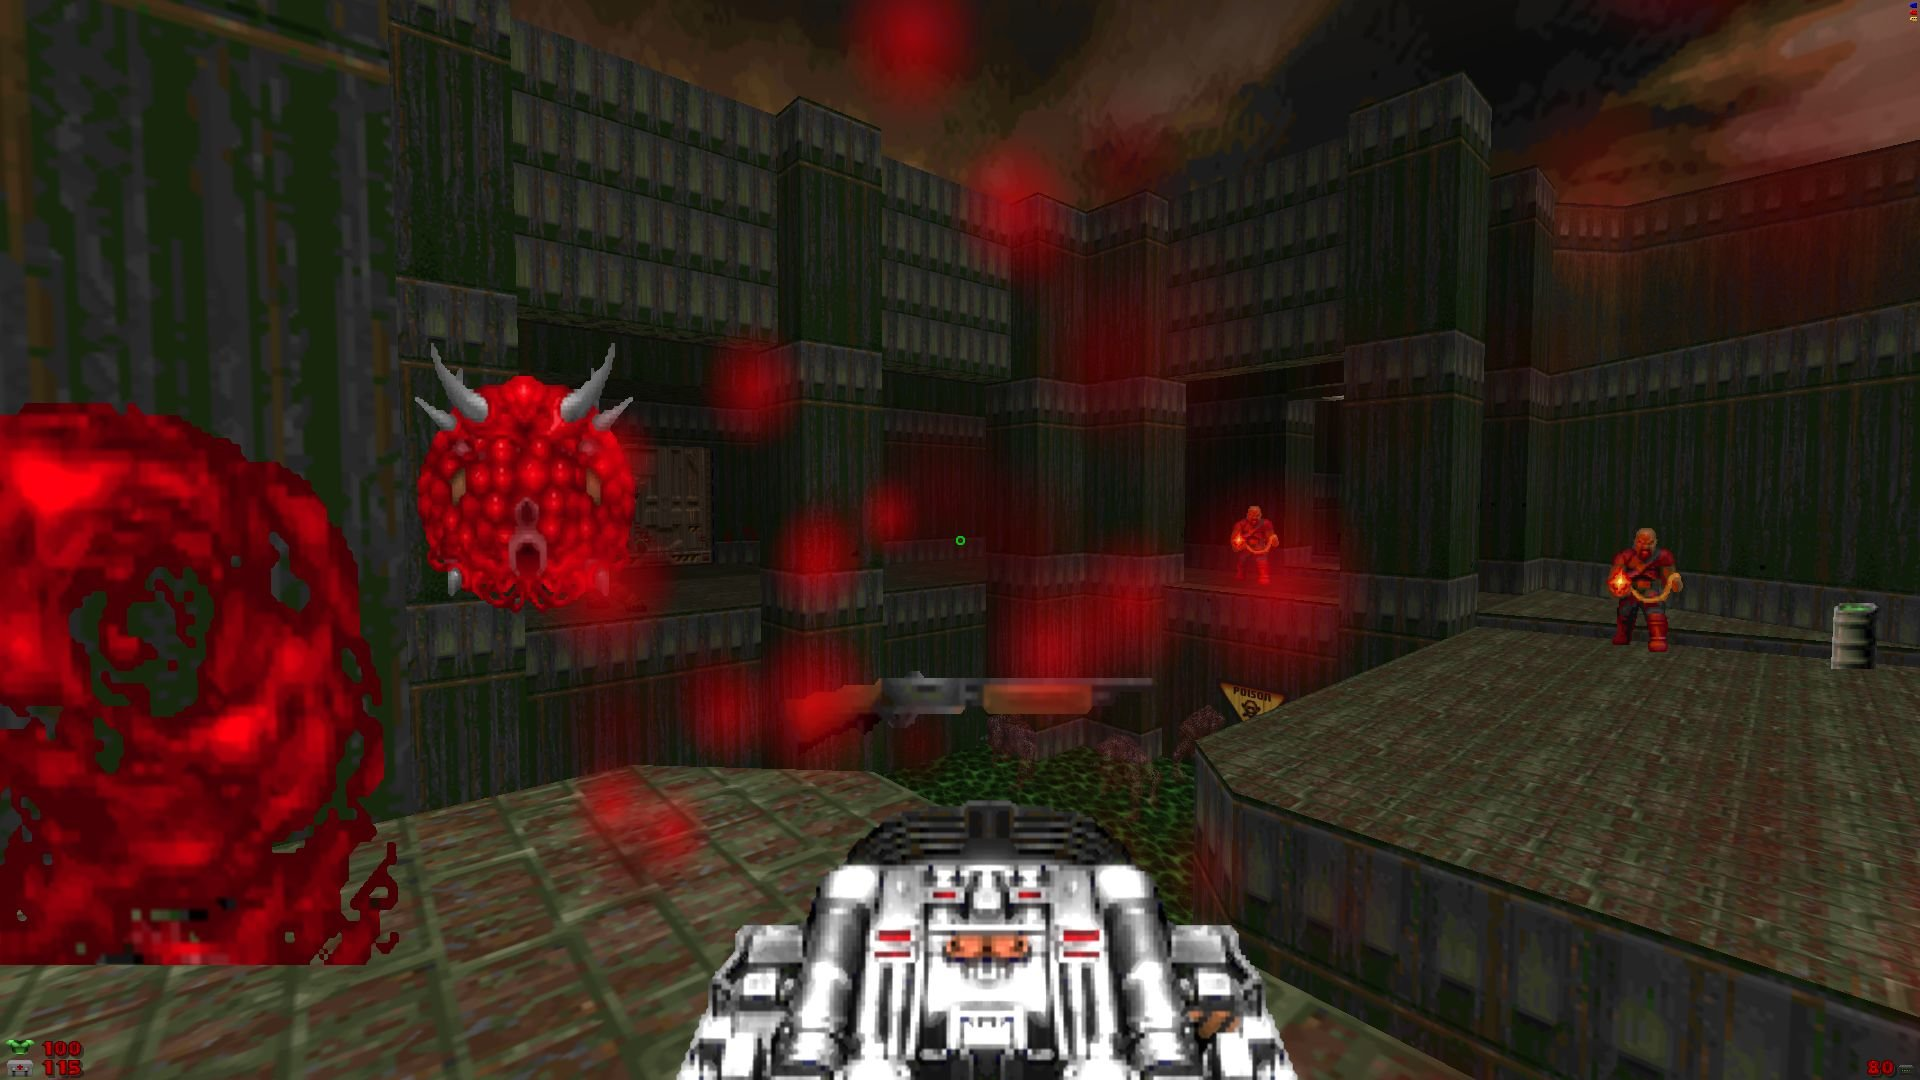 Screenshot_Doom_20190630_124508_1.jpg.83a85766cb587be6a1e55903a1538332.jpg